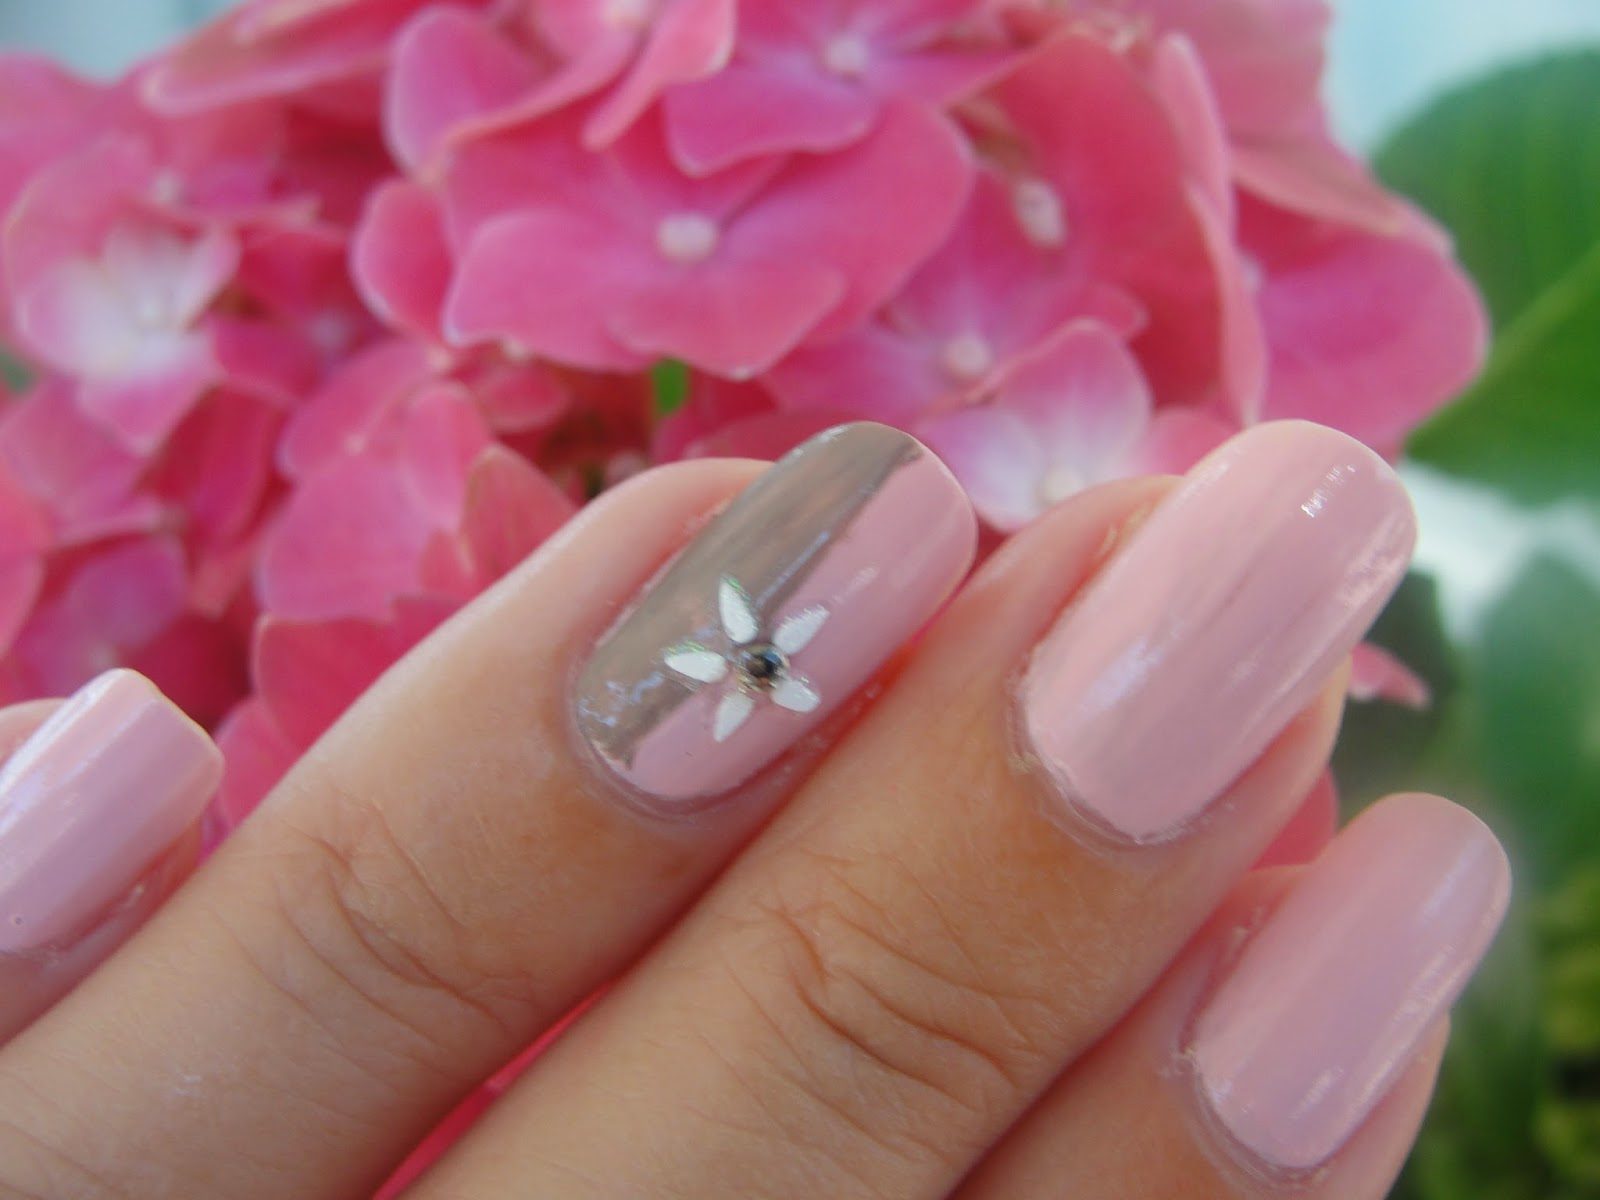 Nail designs with flowers beauty4free2u i love all pastel colors and especially in spring these colors work beautifully i like to have one accent nail in a different color prinsesfo Choice Image